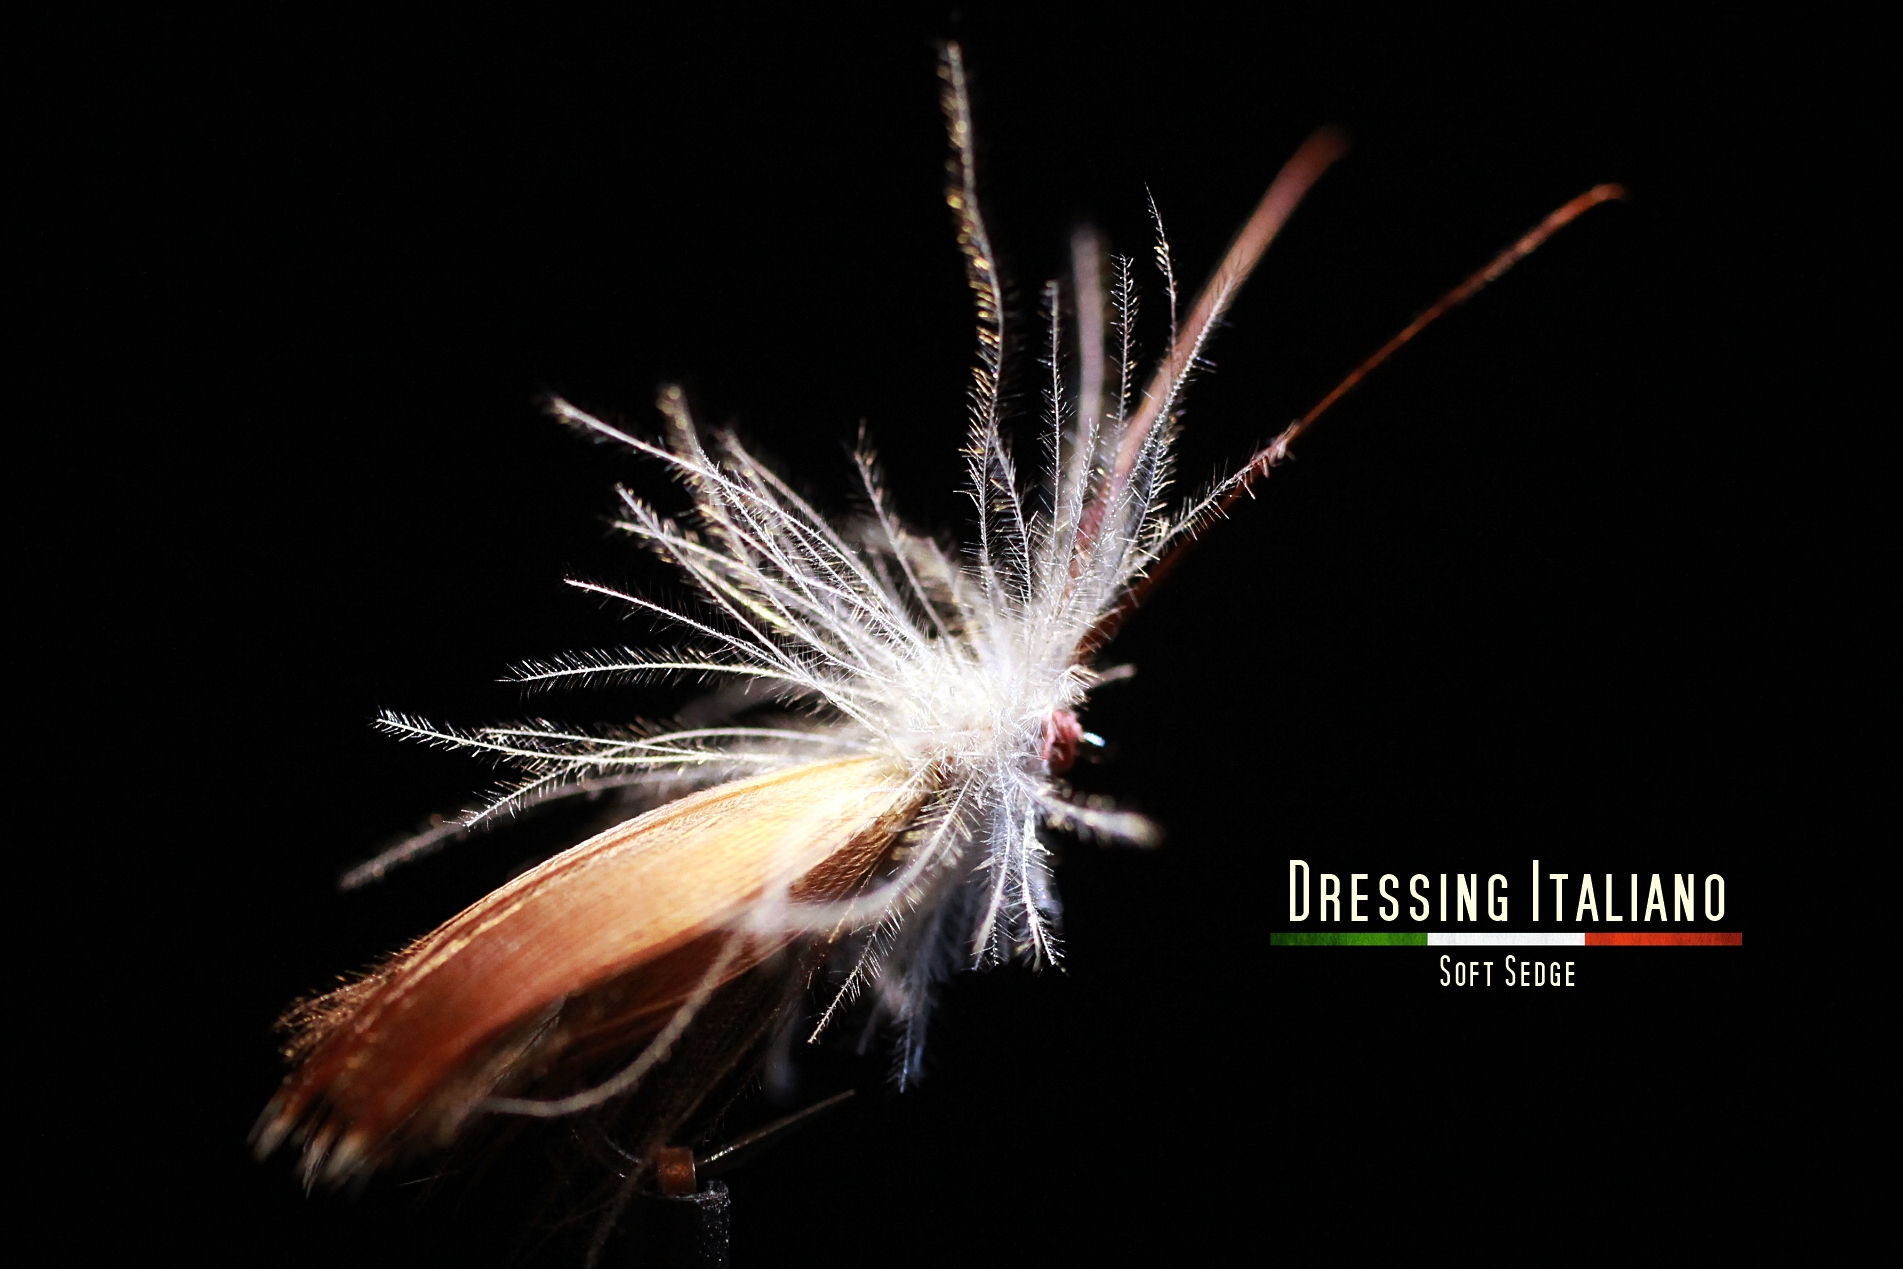 SOFTSEDGE